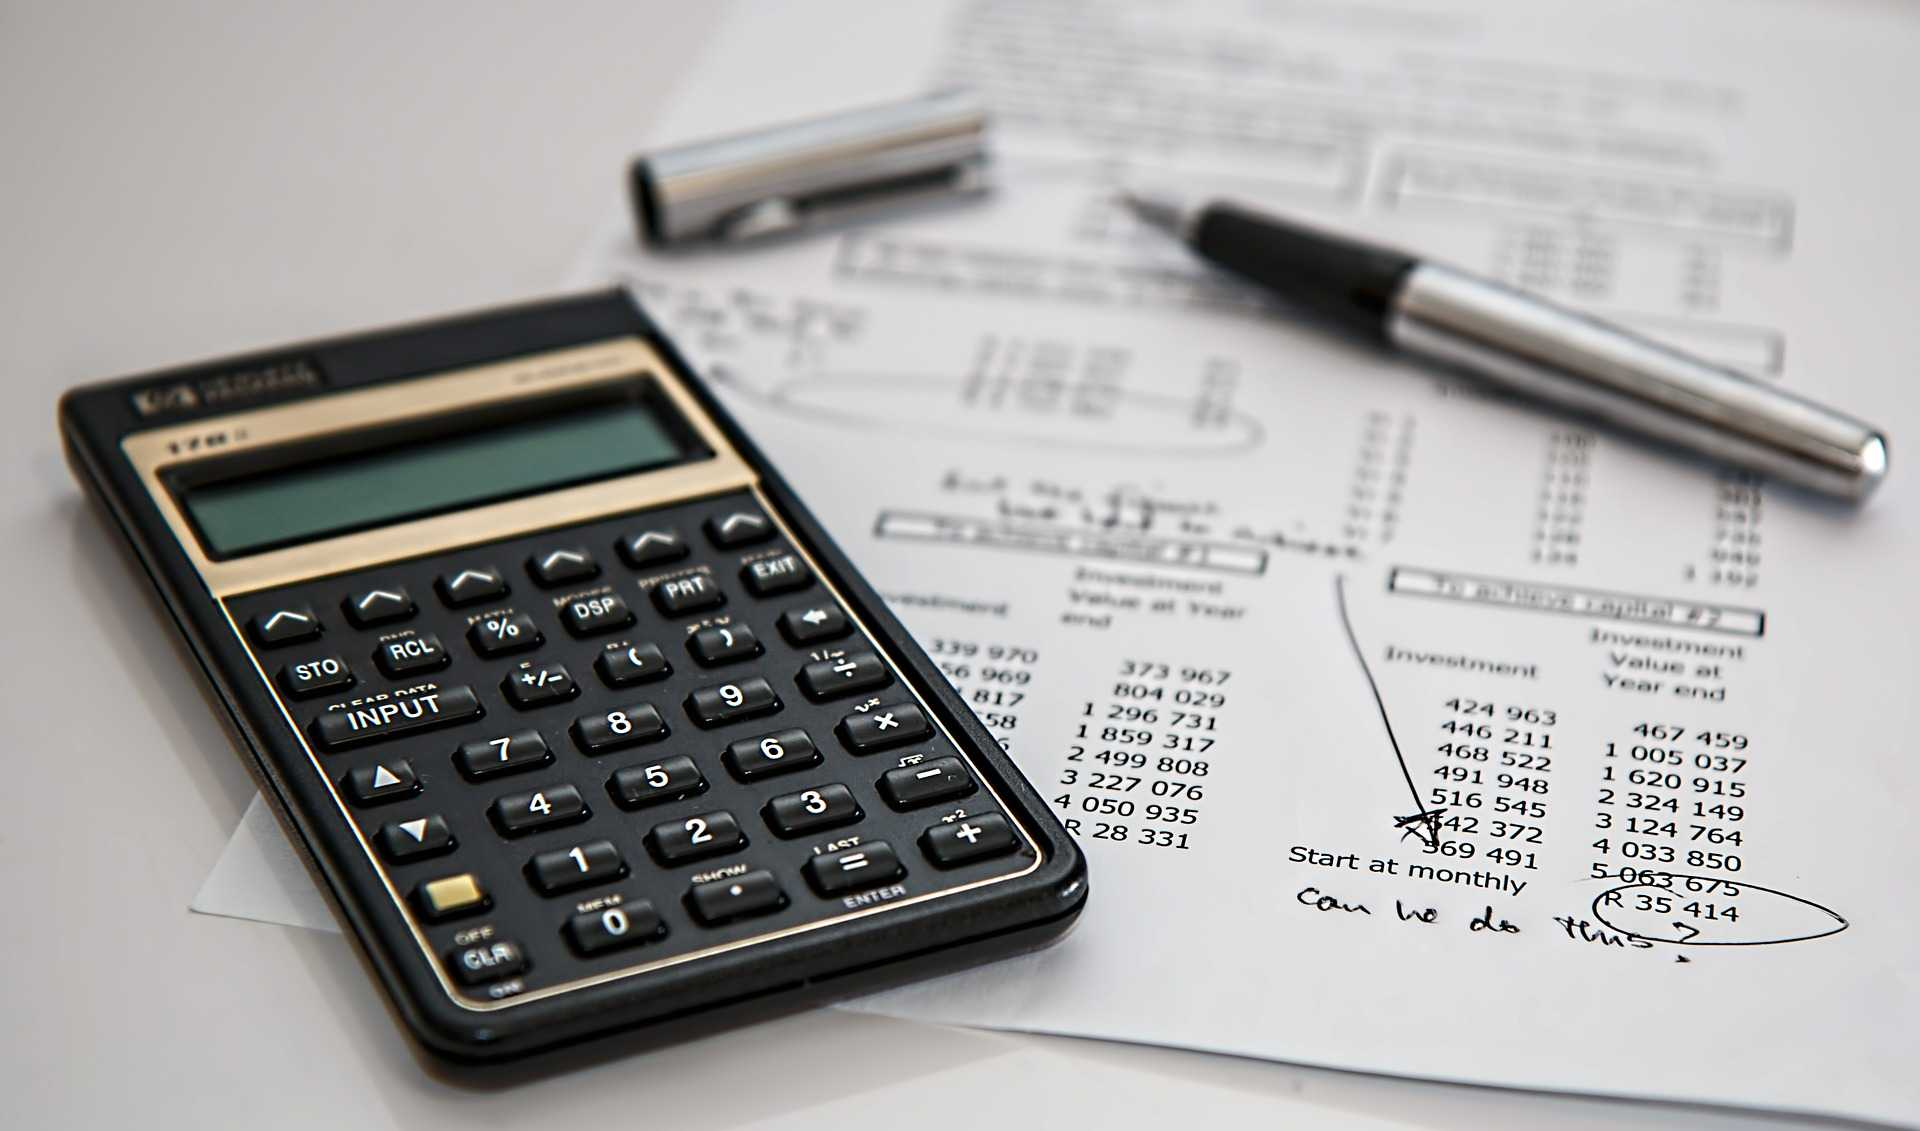 Calculate the total annual budget